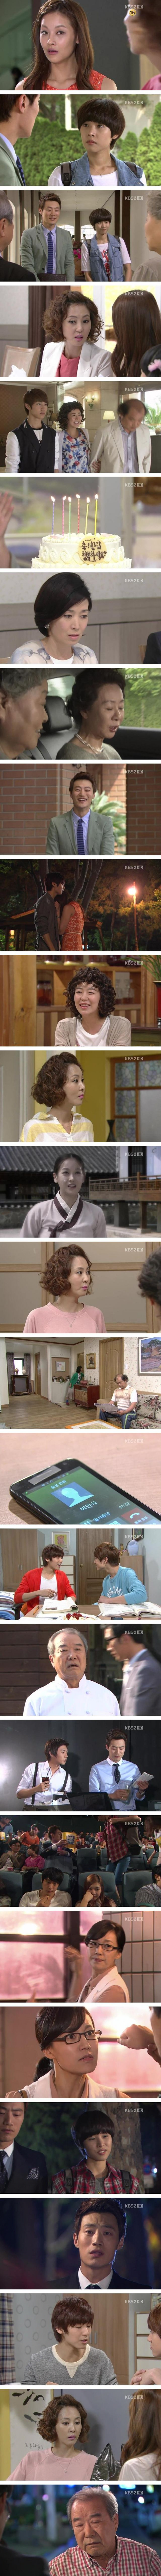 "Added episode 36 captures for the Korean drama "" My Husband Got a"